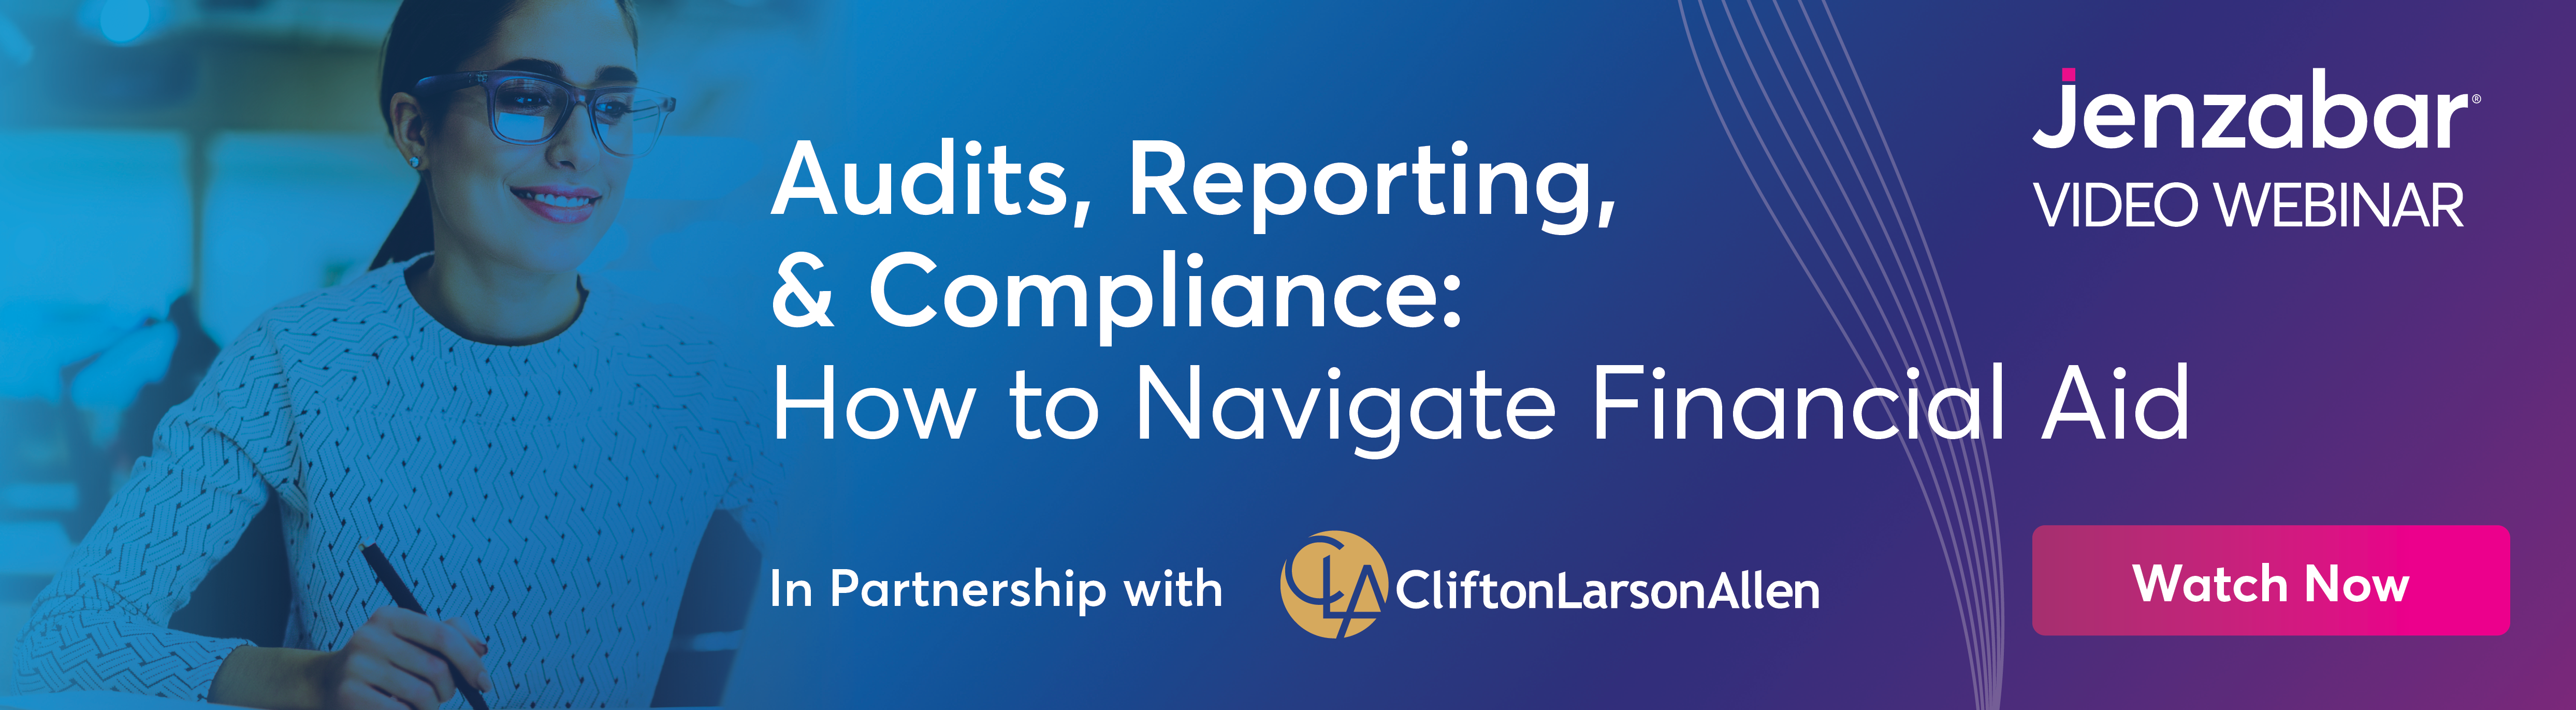 Audits, Reporting & Compliance: How to Navigate Financial Aid